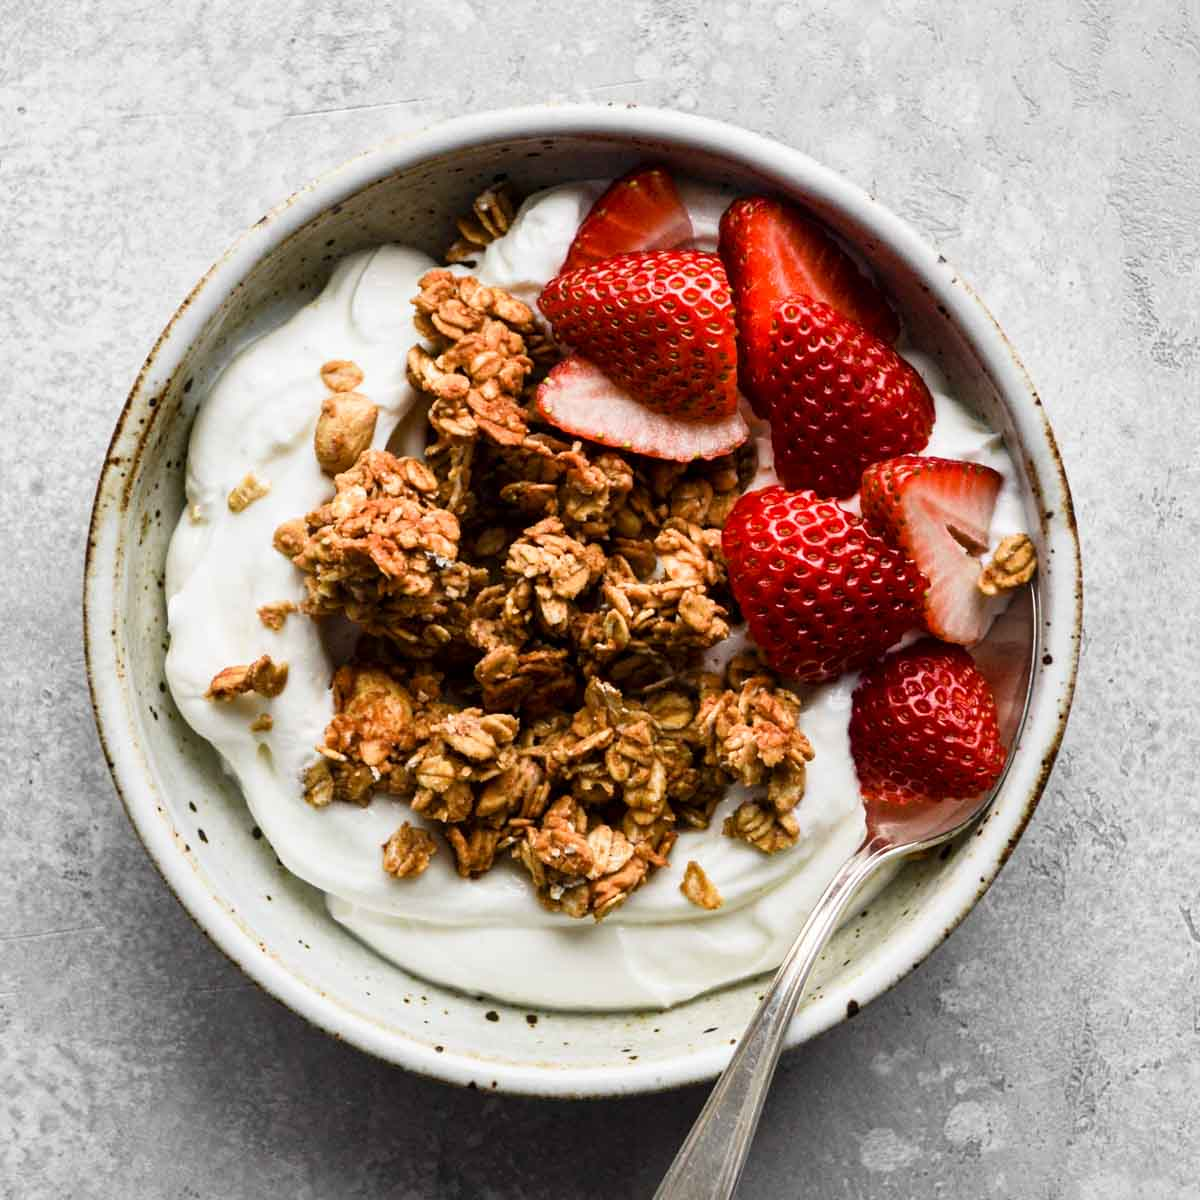 Granola in a bowl with yogurt and strawberries